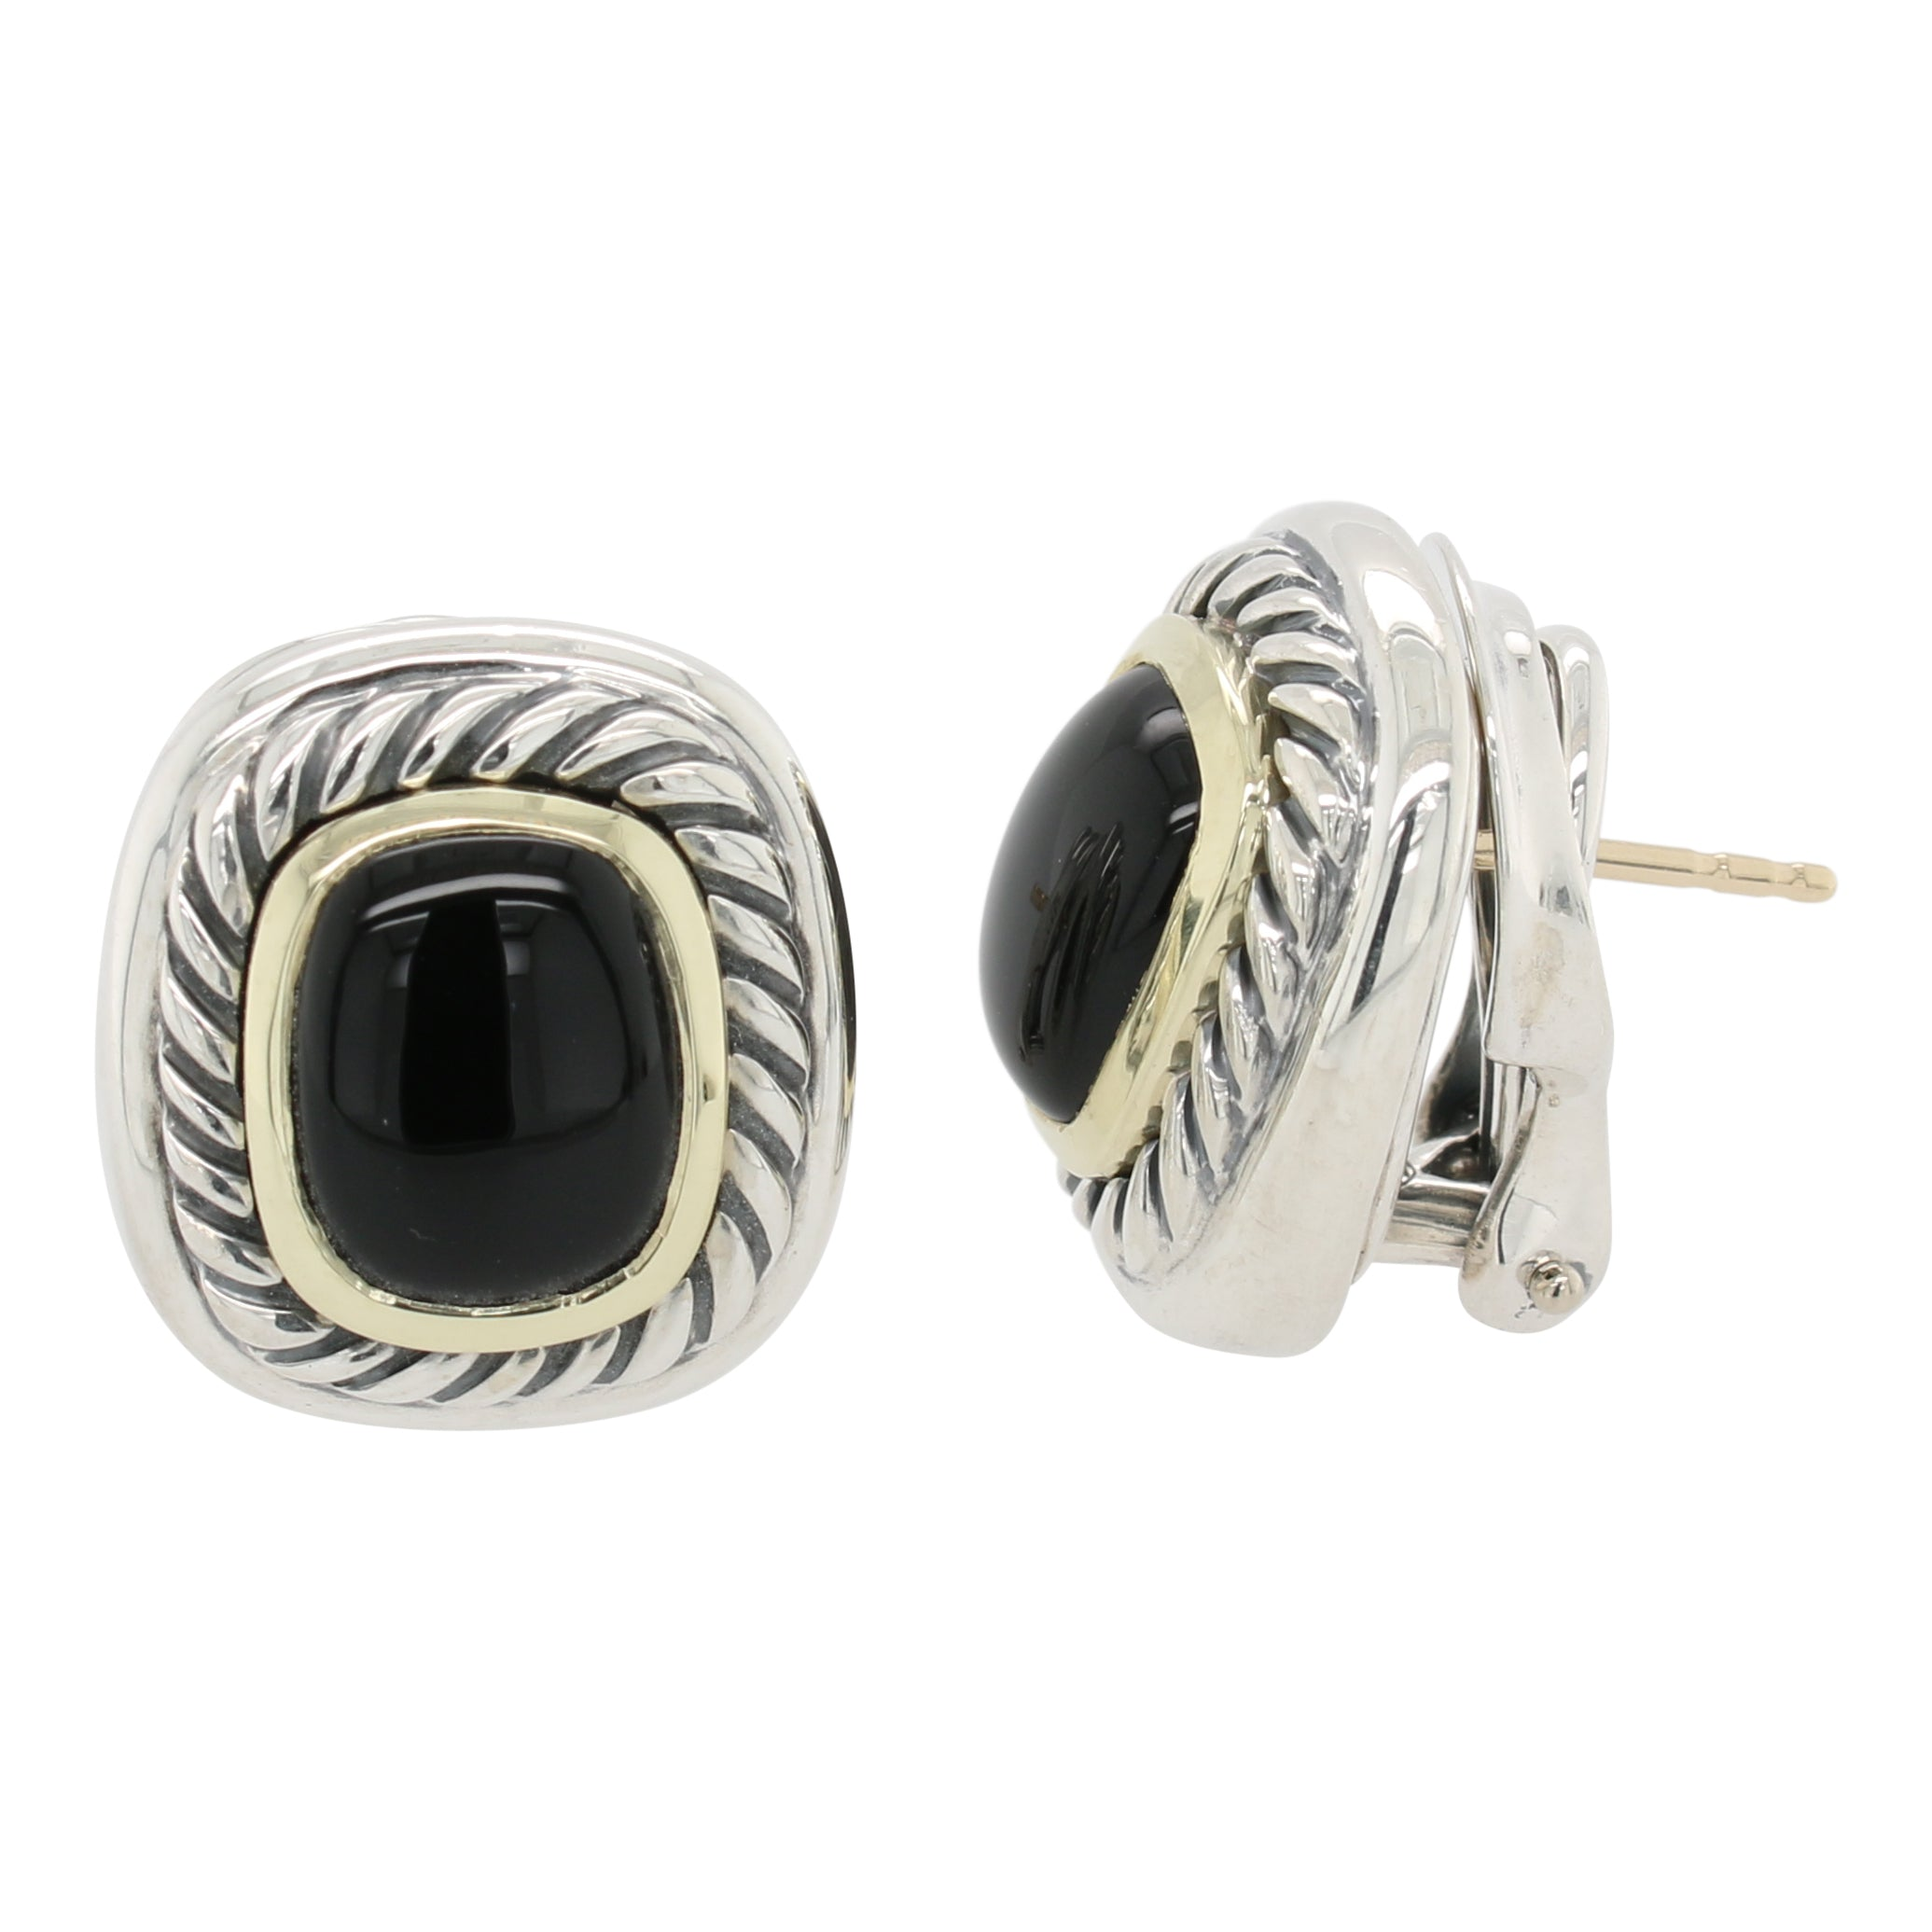 David Yurman Black Onyx Albion Earrings